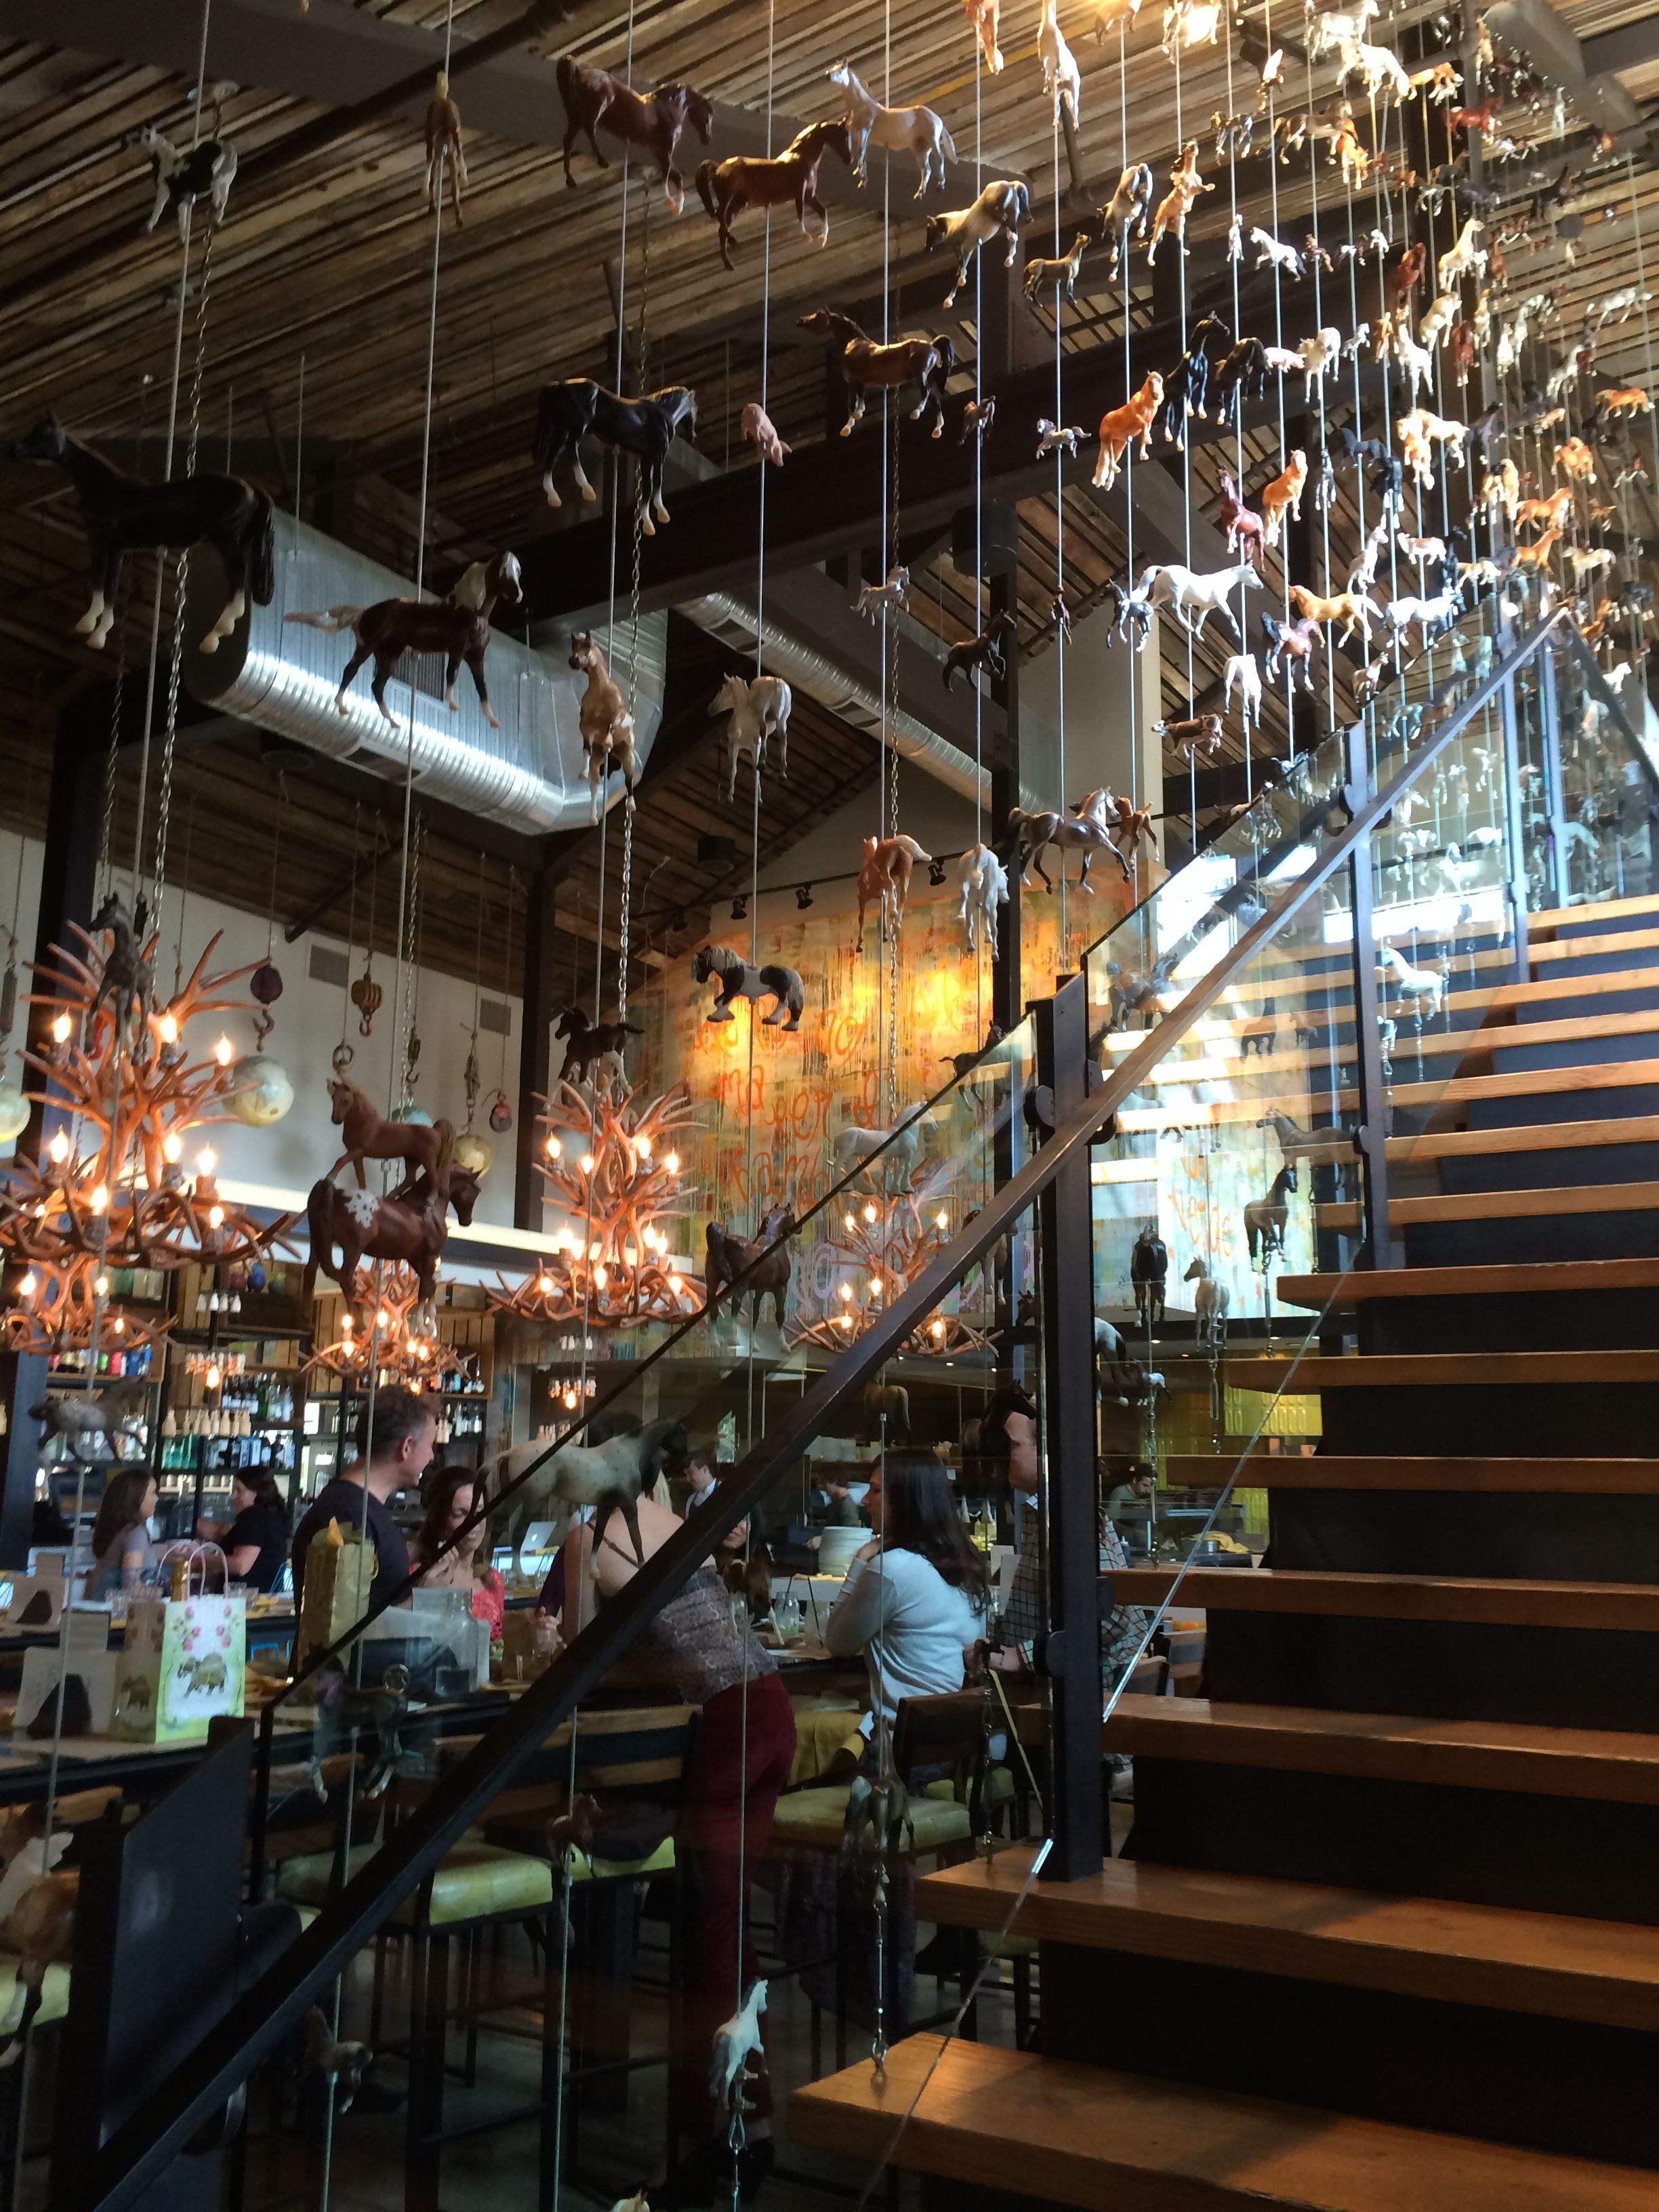 With Its Rustic And Quirky Decor Its Huge Wine Selection And Its Friendly Atmosphere Cucina Enoteca Is A Fun Place To Eat Quirky Decor North City Day Trips